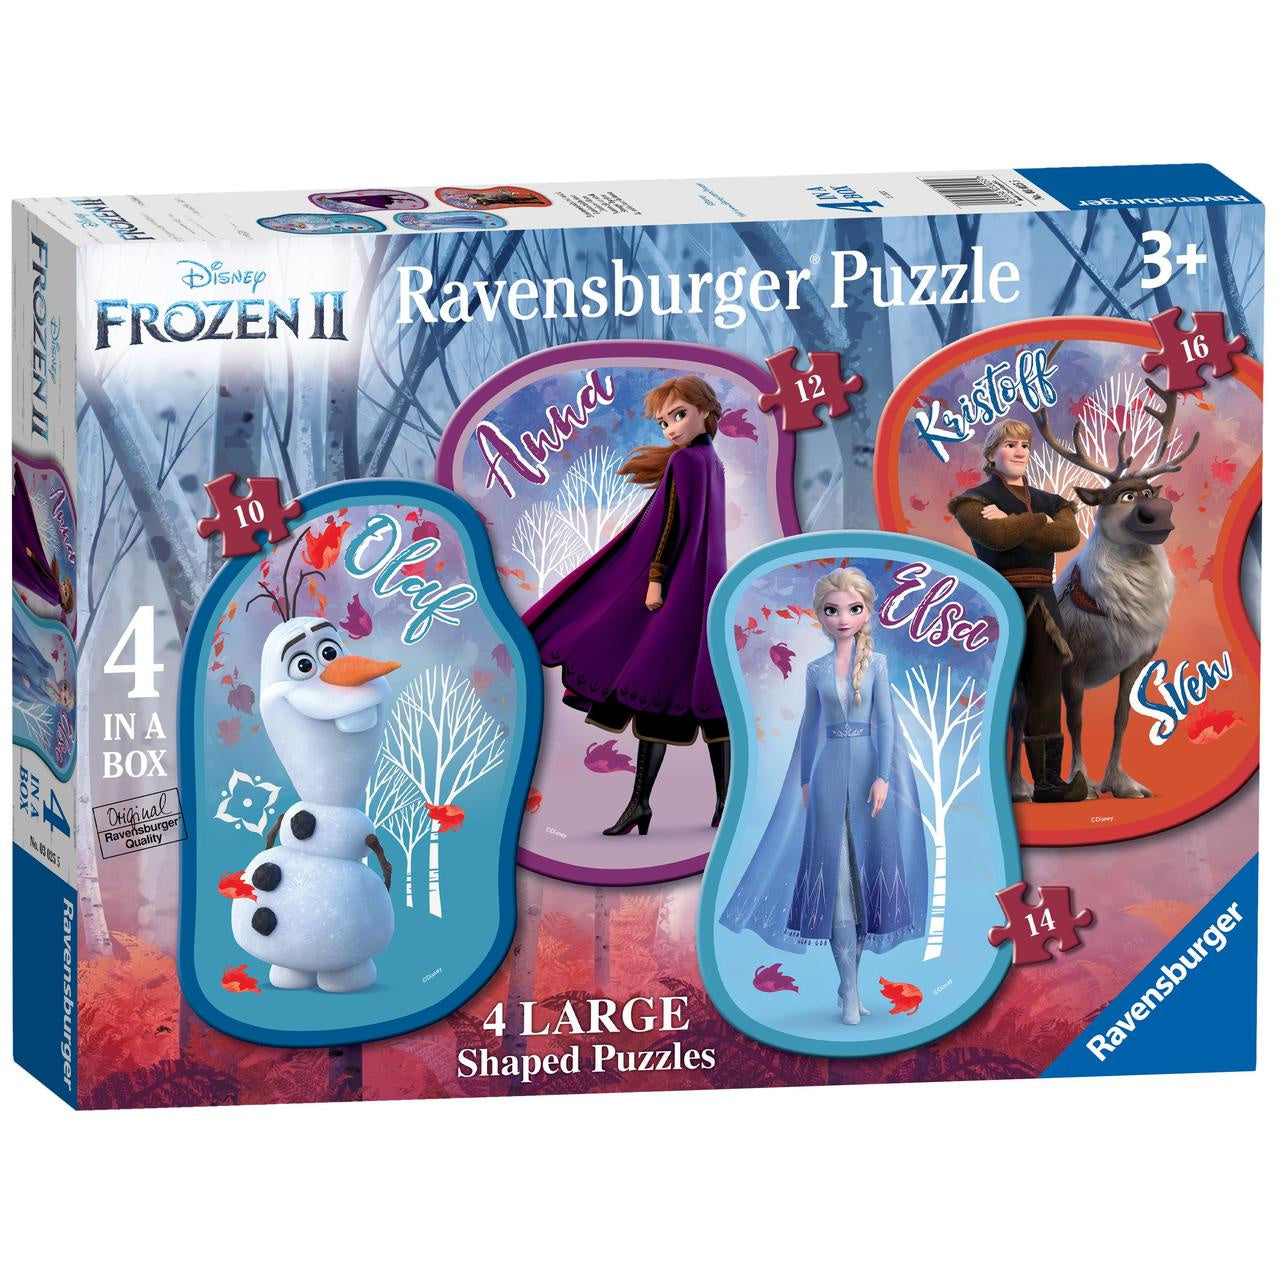 Disney Frozen II 4 in a Box Large Jigsaw Puzzles